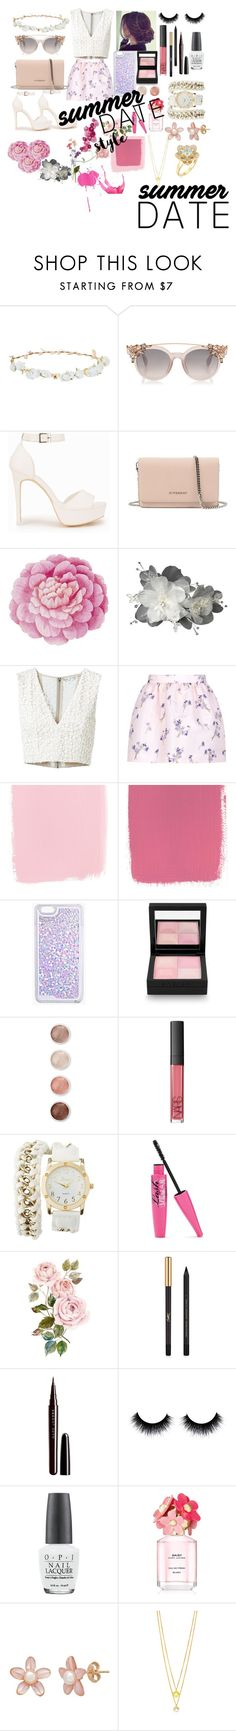 """""""Summer date style"""" by yolo1434 ❤ liked on Polyvore featuring Robert Rose, Nly Shoes, Givenchy, Ballard Designs, Alice + Olivia, RED Valentino, Boohoo, Terre Mère, NARS Cosmetics and Charlotte Russe"""